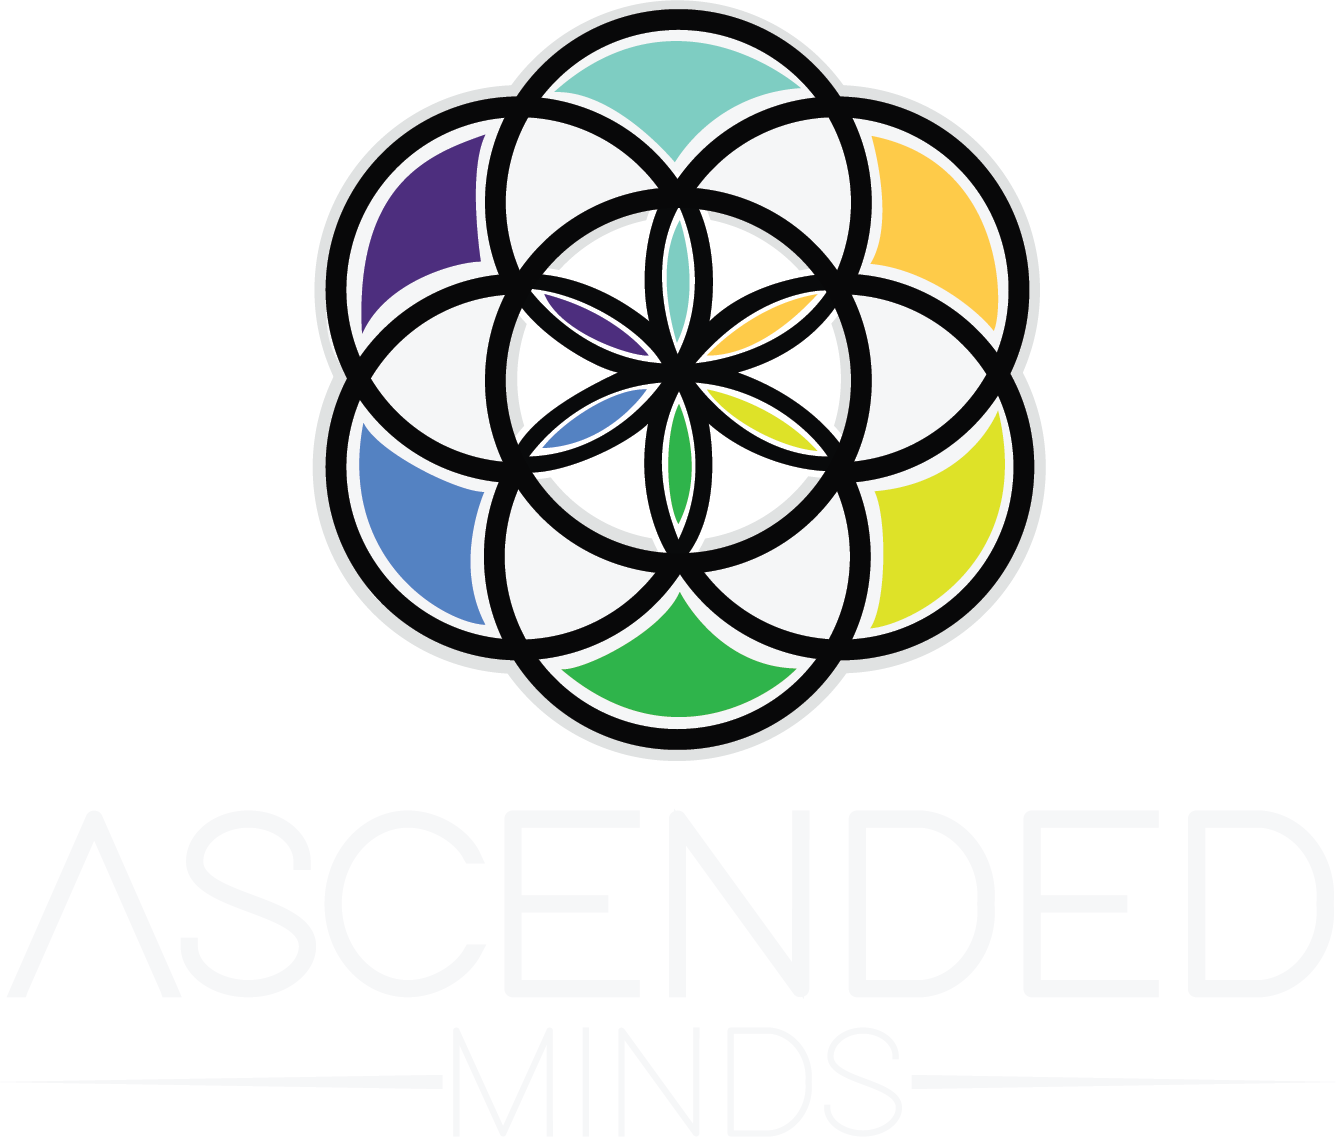 Ascended Minds